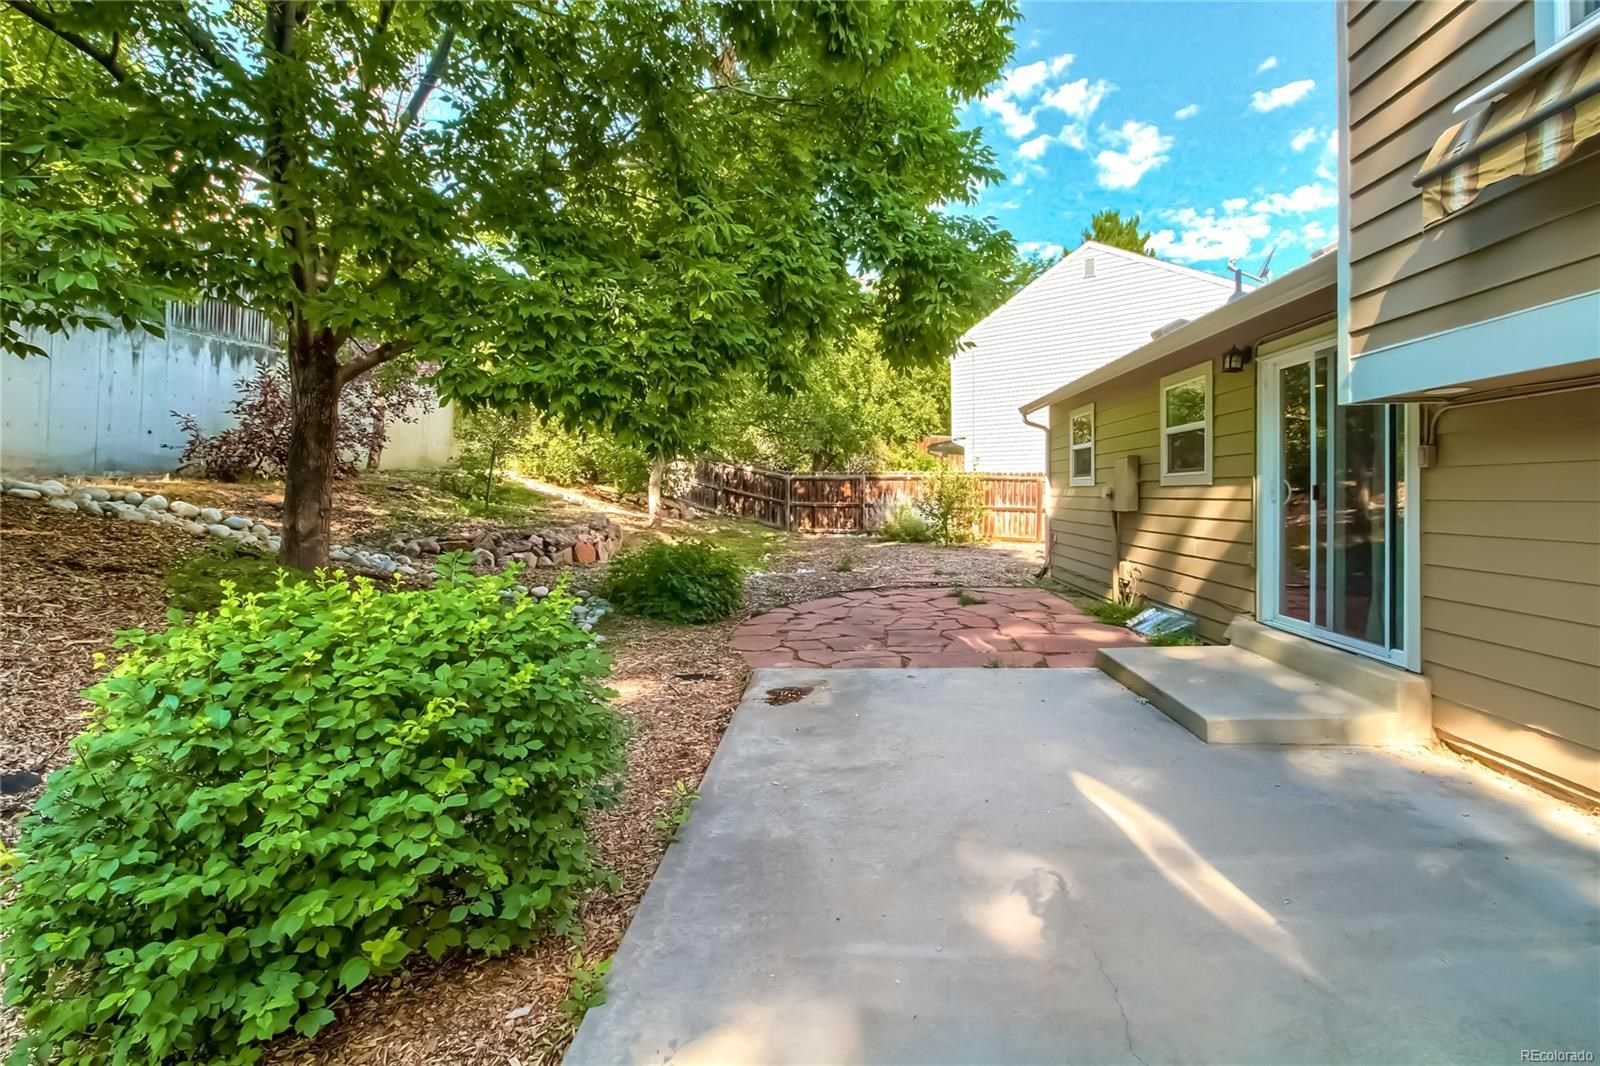 MLS# 2781467 - 38 - 7052 S Glencoe Court, Centennial, CO 80122